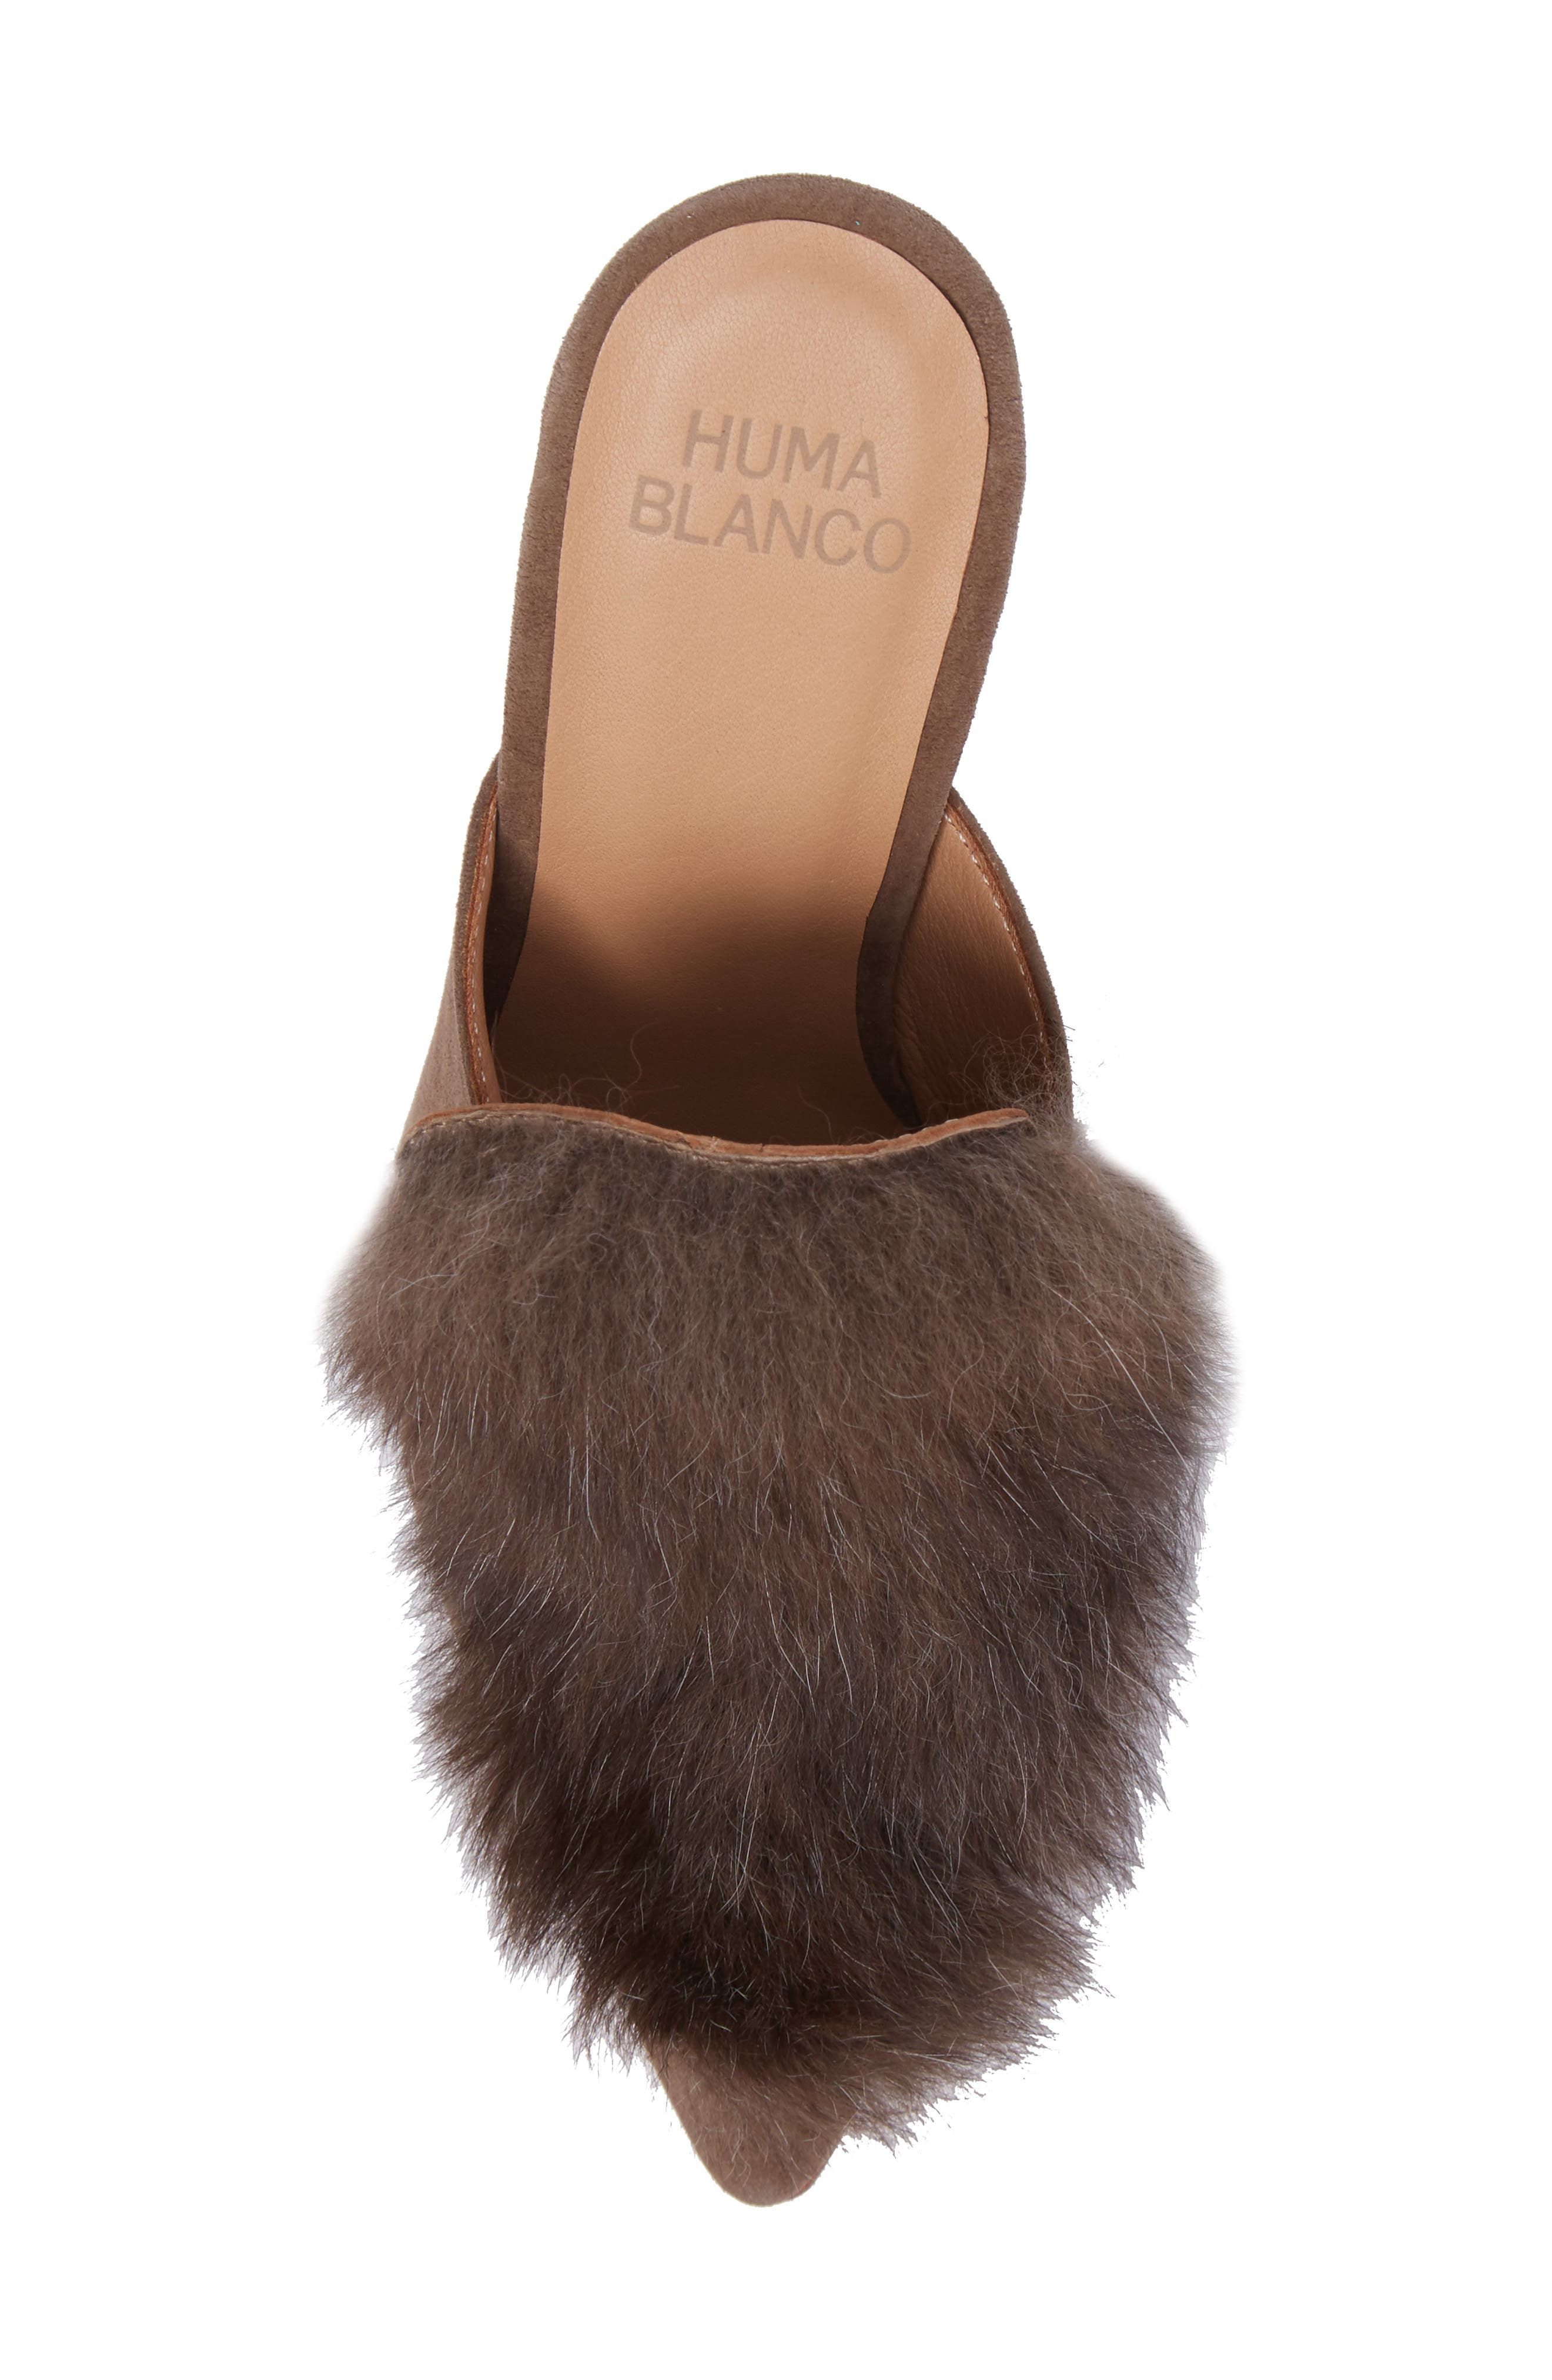 Alternate Image 5  - Huma Blanco Marietta Genuine Alpaca Hair Mule (Women)